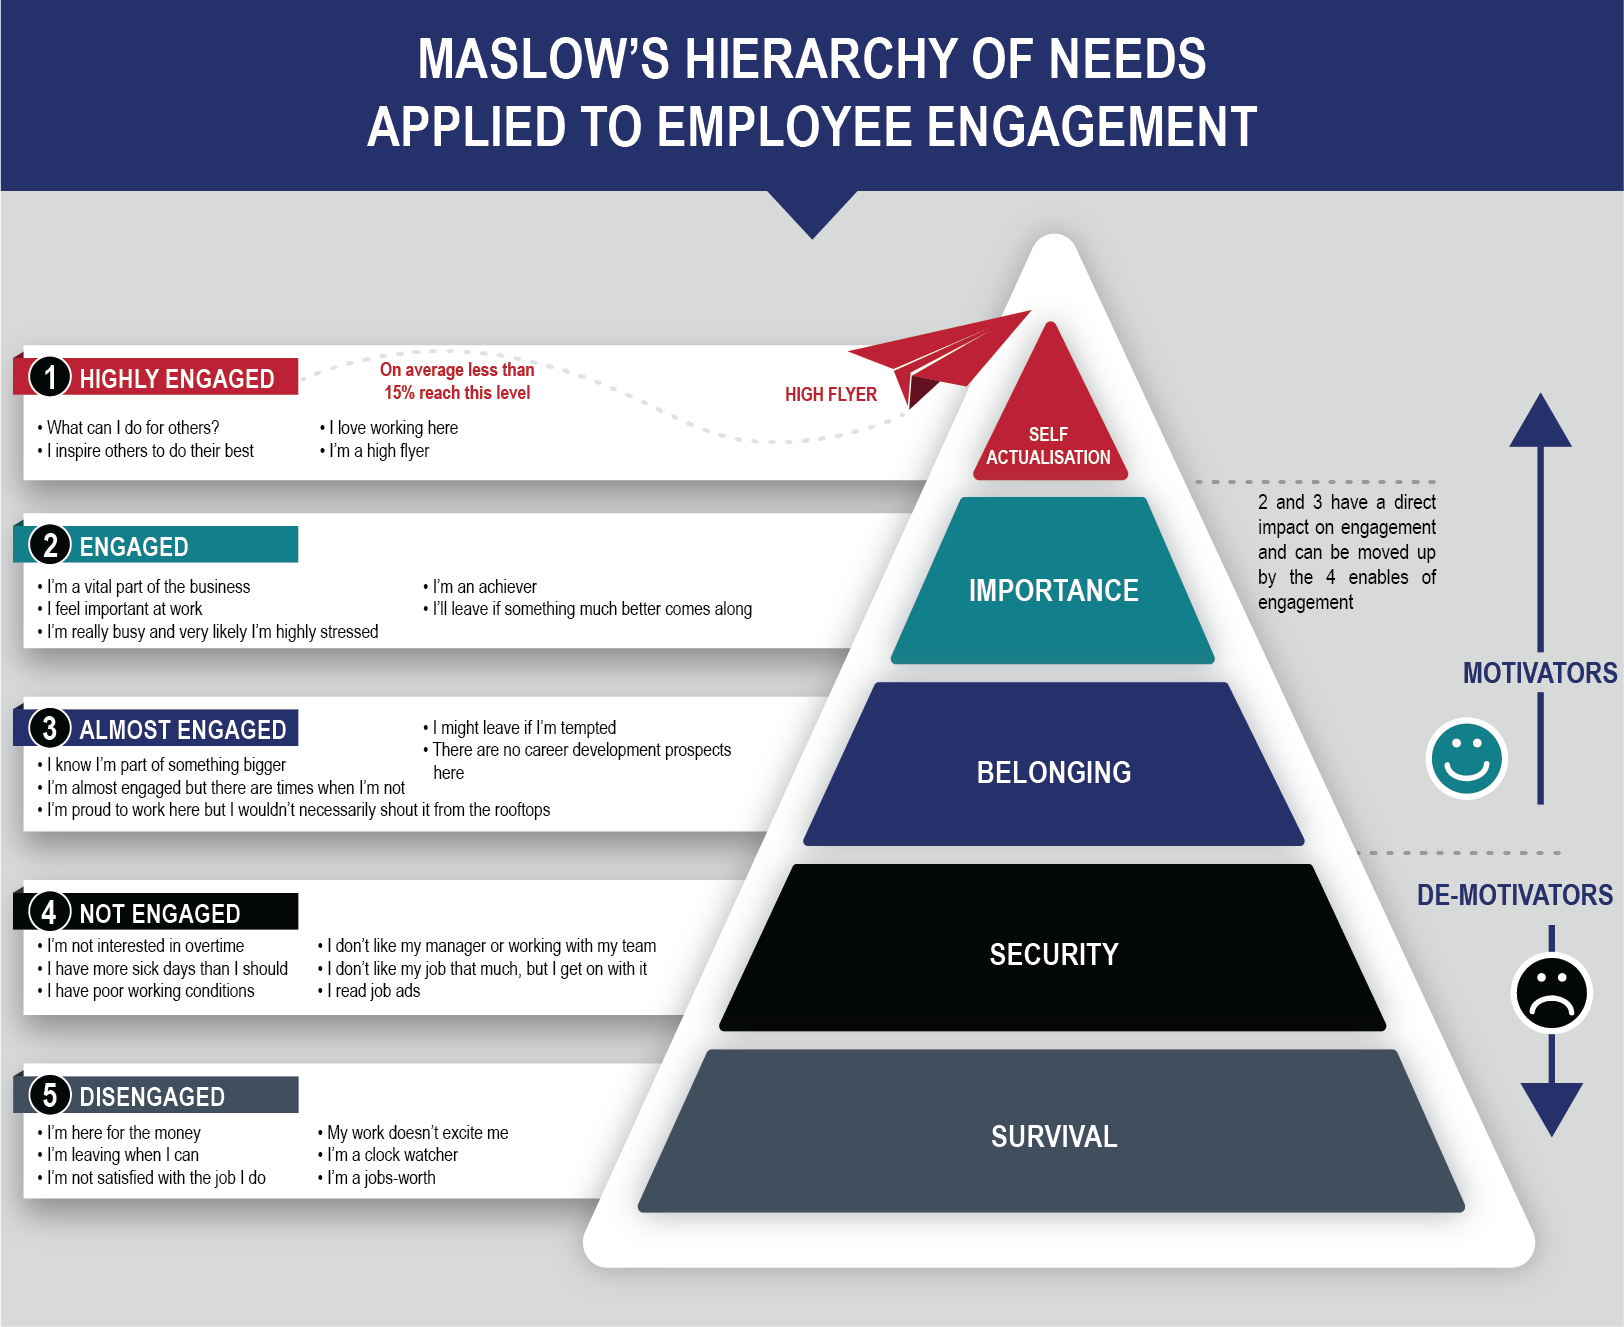 employee engagement and maslow's hierarchy